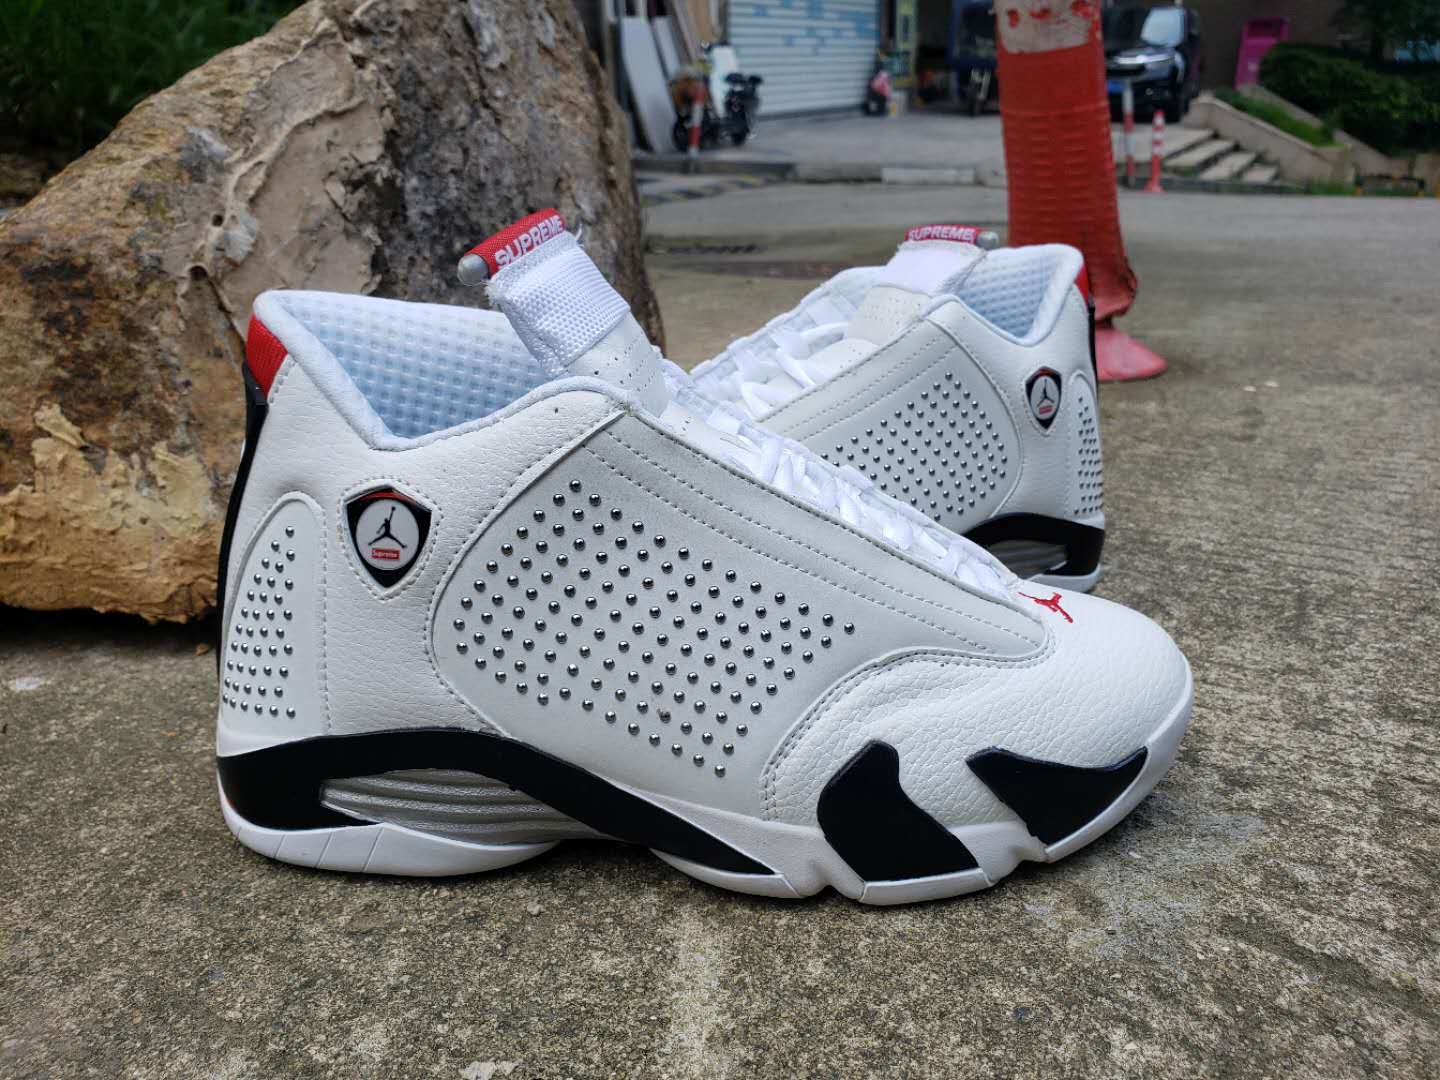 Supreme x Air Jordan 14 White Black Shoes